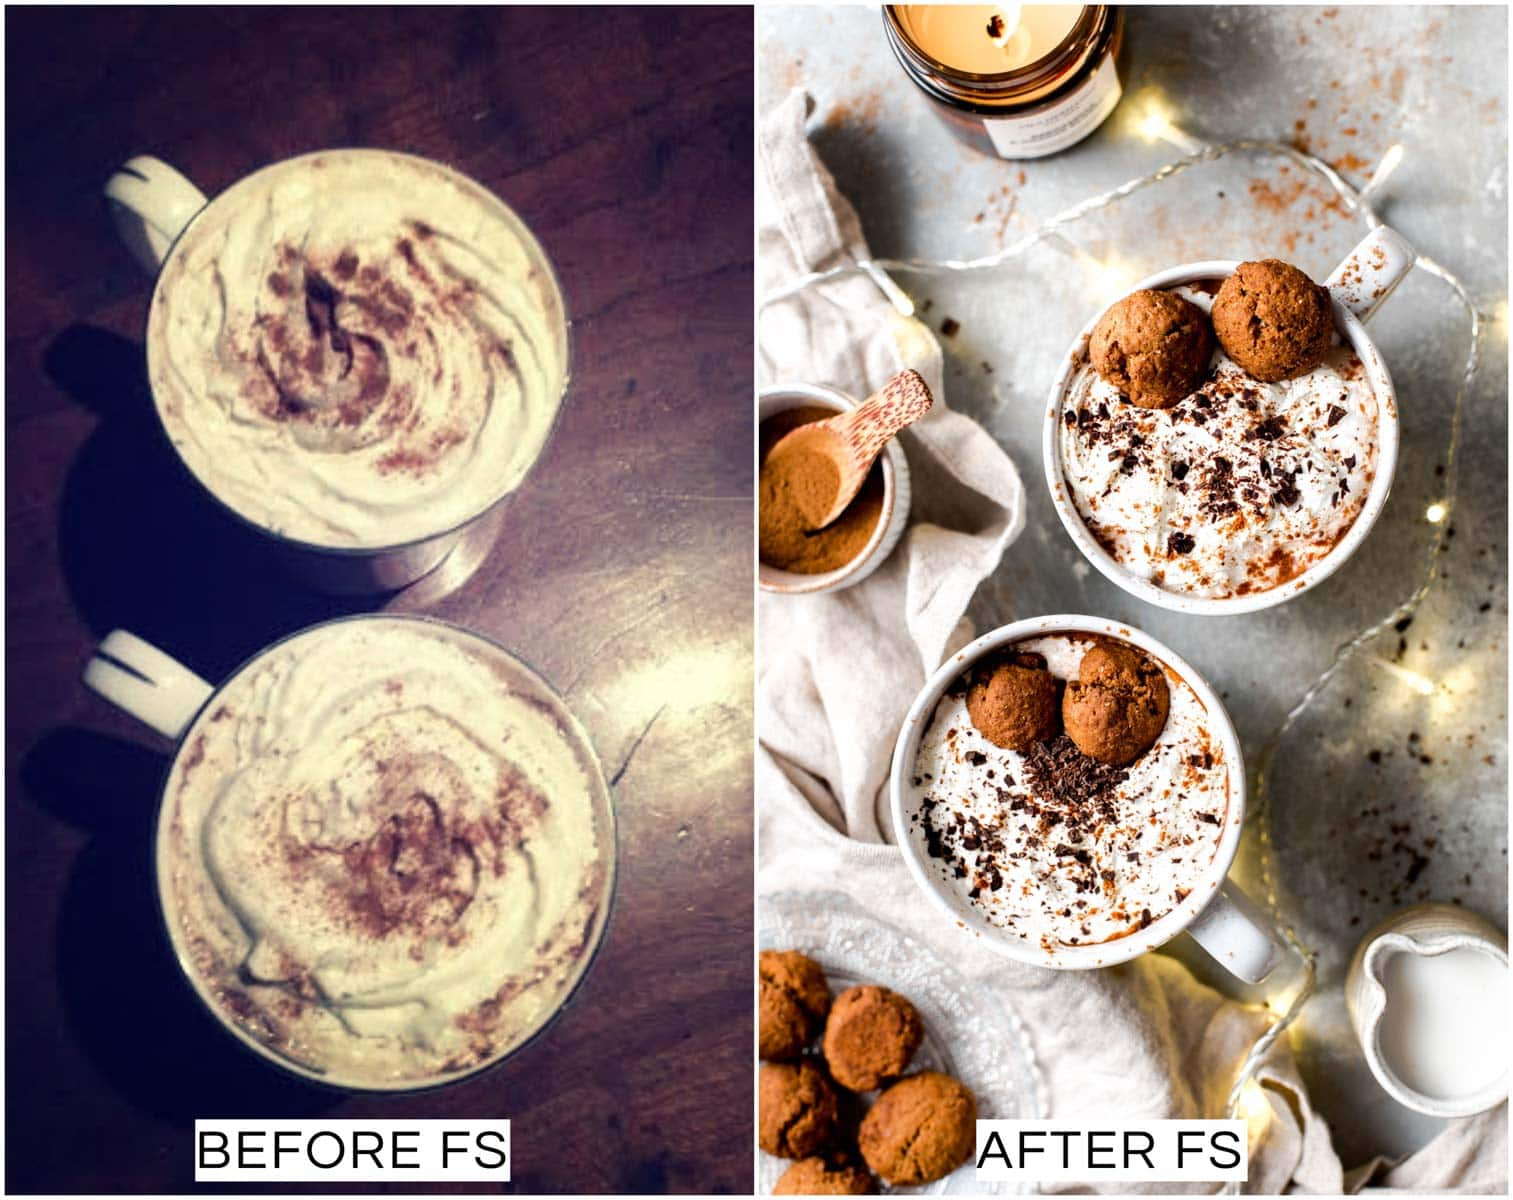 A collage of two images showing a before and after picture of a hot Christmas drink.